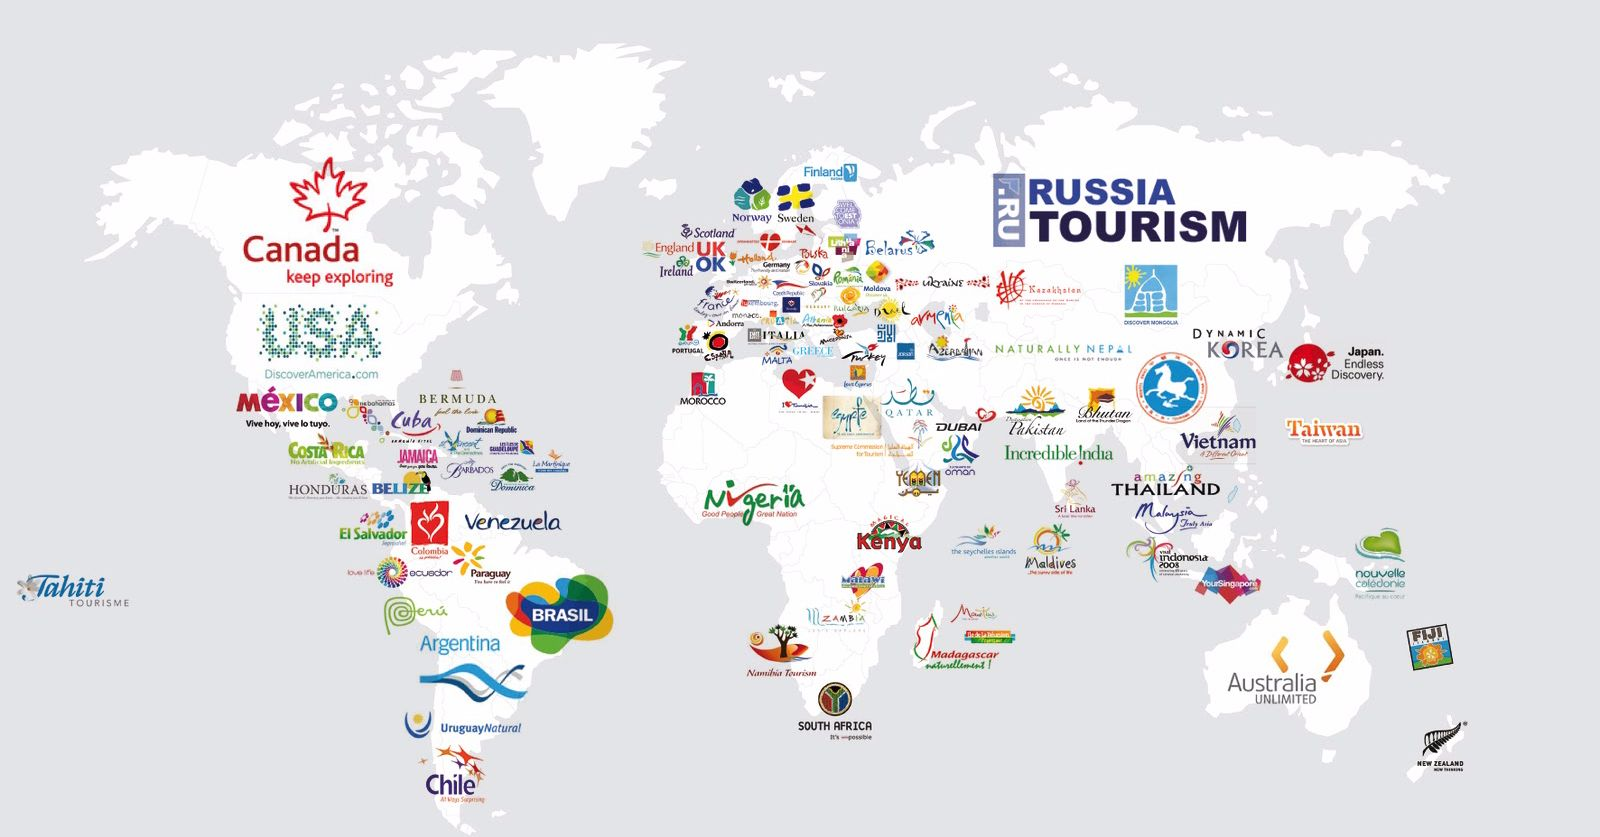 The Map Which Displays Every Country's Tourism Slogans Is Totally Spot On!